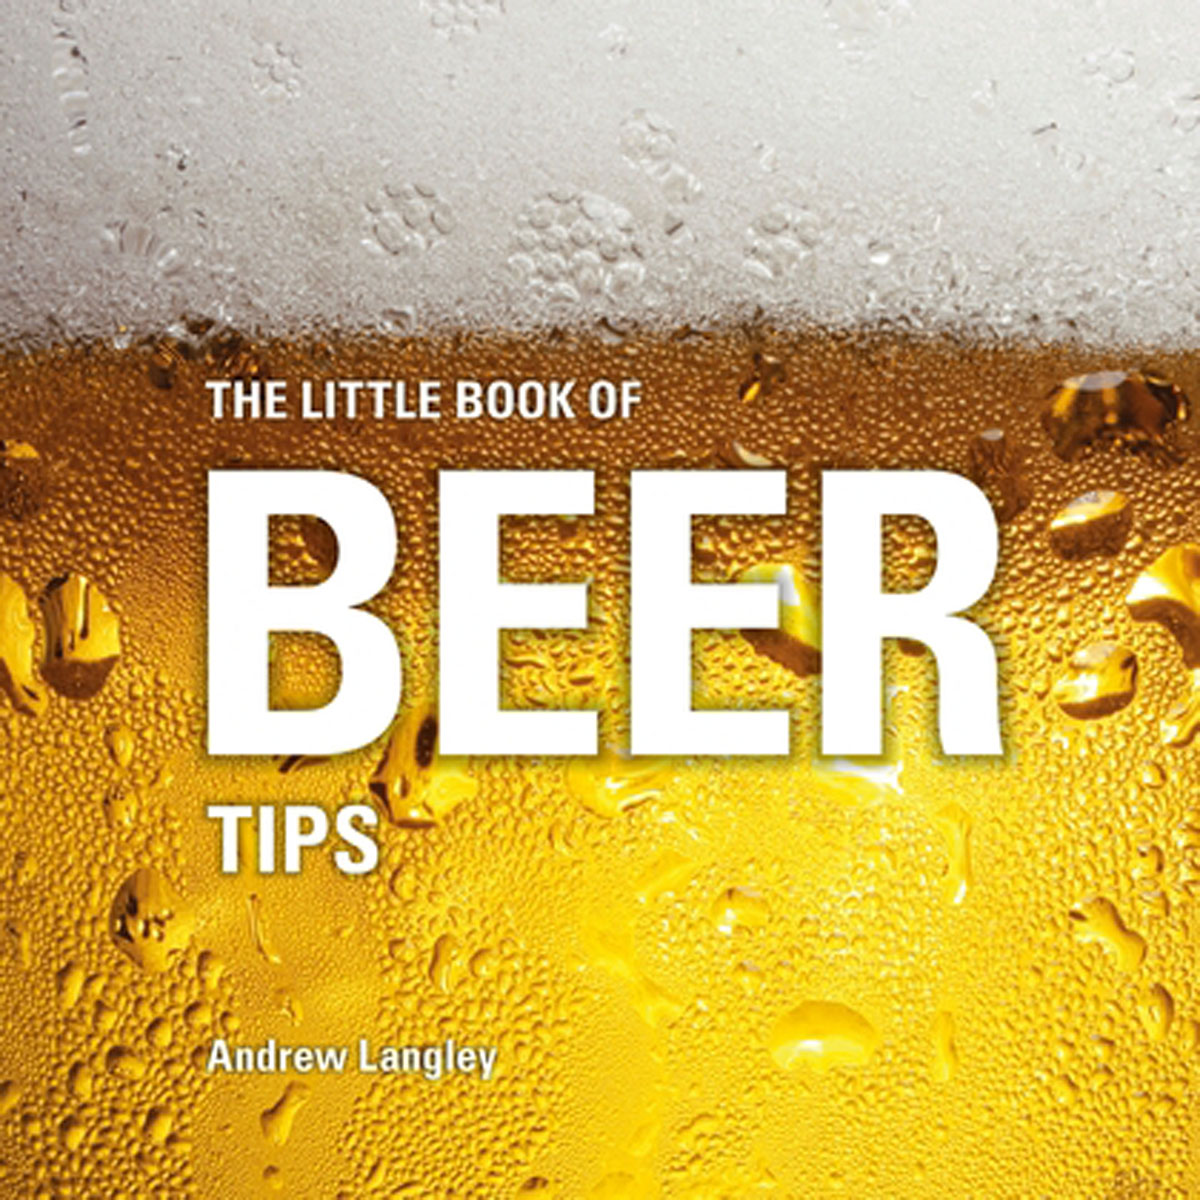 The Little Book of Beer Tips john cross the little black book for managers how to maximize your key management moments of power